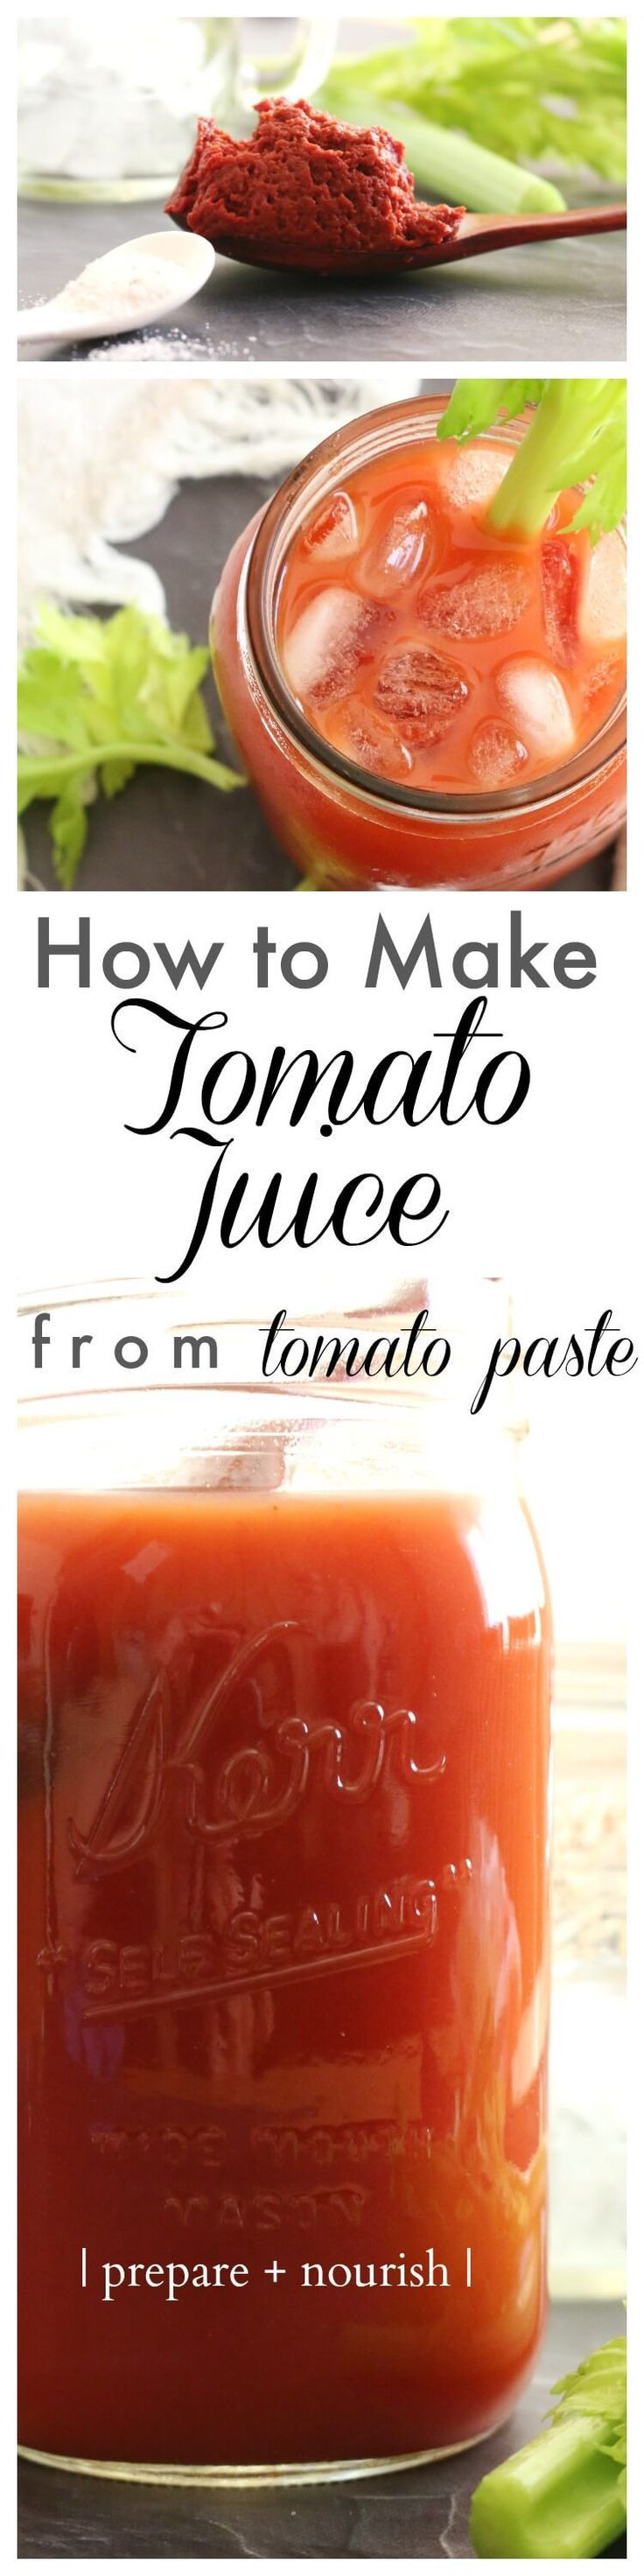 How To Make Tomato Sauce Out Of Tomato Paste  How To Make Tomato Juice From Tomato Paste